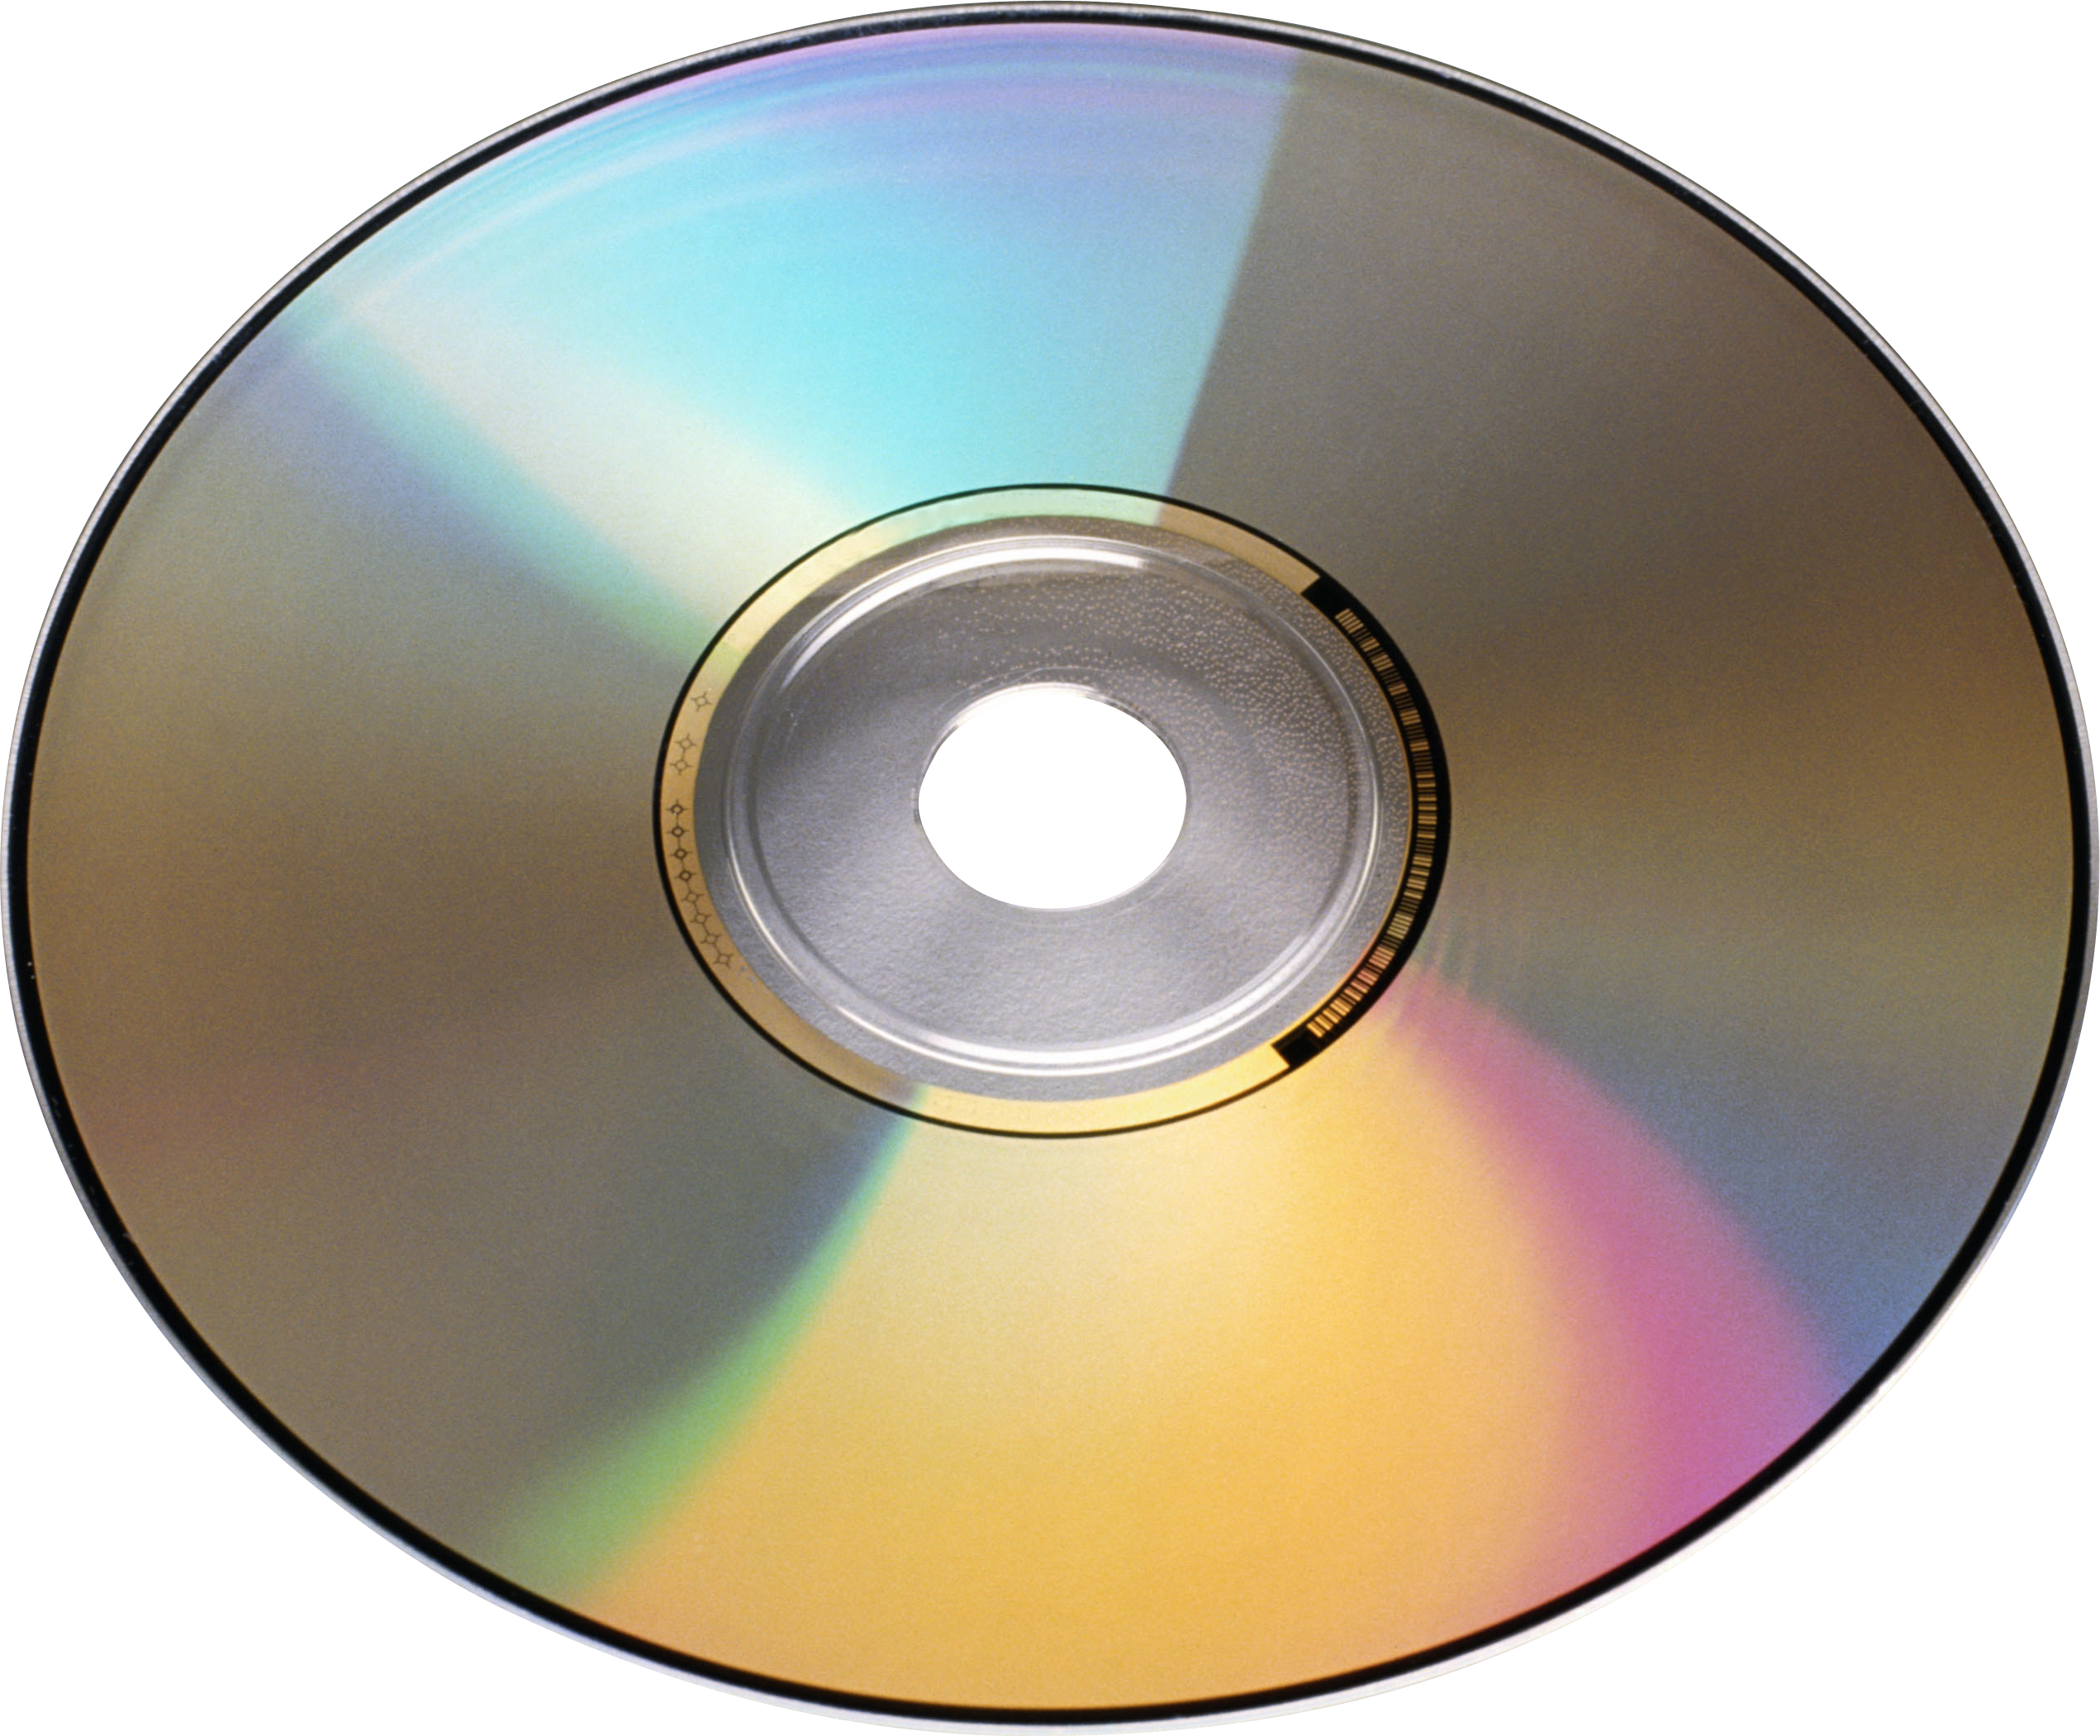 CD/DVD PNG images free download, CD png, DVD png.